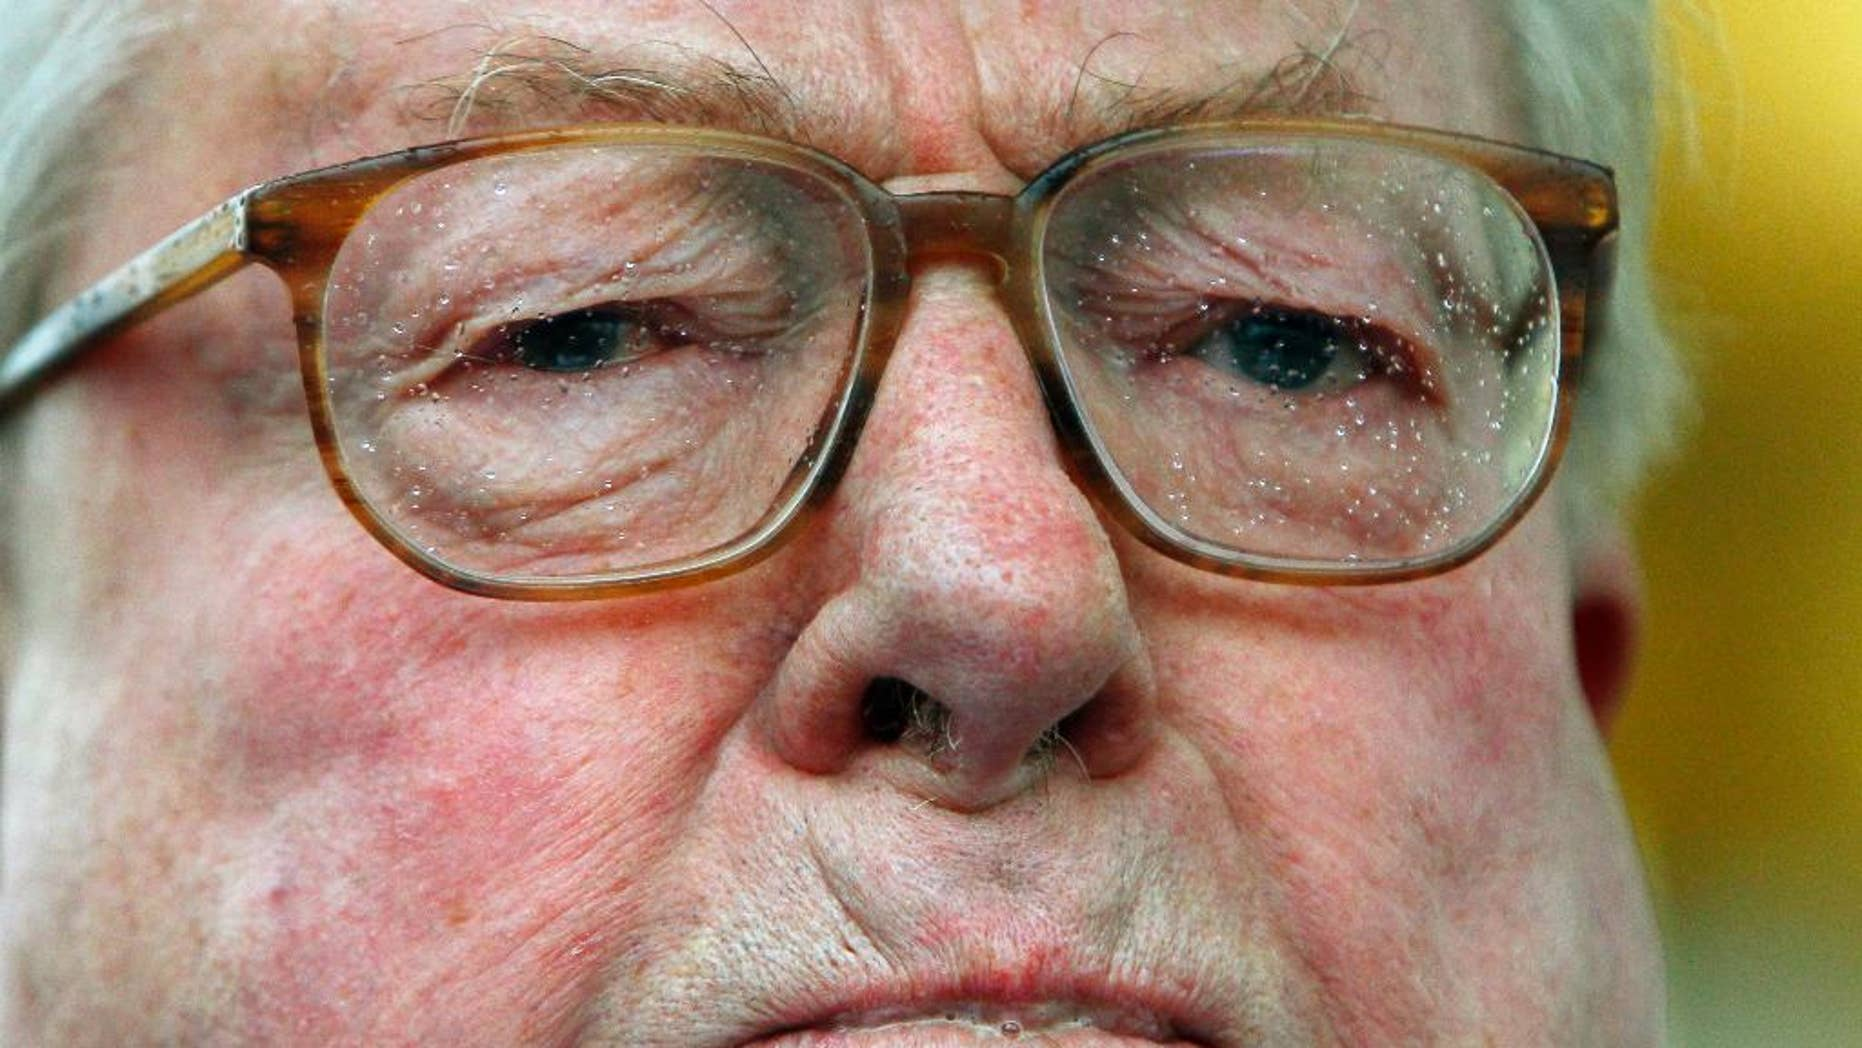 "FILE - In this Jan.7, 2012 file photo, Jean Marie Le Pen delivers a speech in Paris. Le Pen, founder and former head of France's far-right National Front party, has been convicted of denying crimes against humanity for repeating that the Nazi gas chambers are a ""detail"" of World War II history. A Paris court convicted then sentenced Le Pen on Wednesday April 6, 2016 to a 30,000 euros ($34,000) fine plus paying damages to three associations, plaintiffs in the case. (AP Photo/Francois Mori, File)"